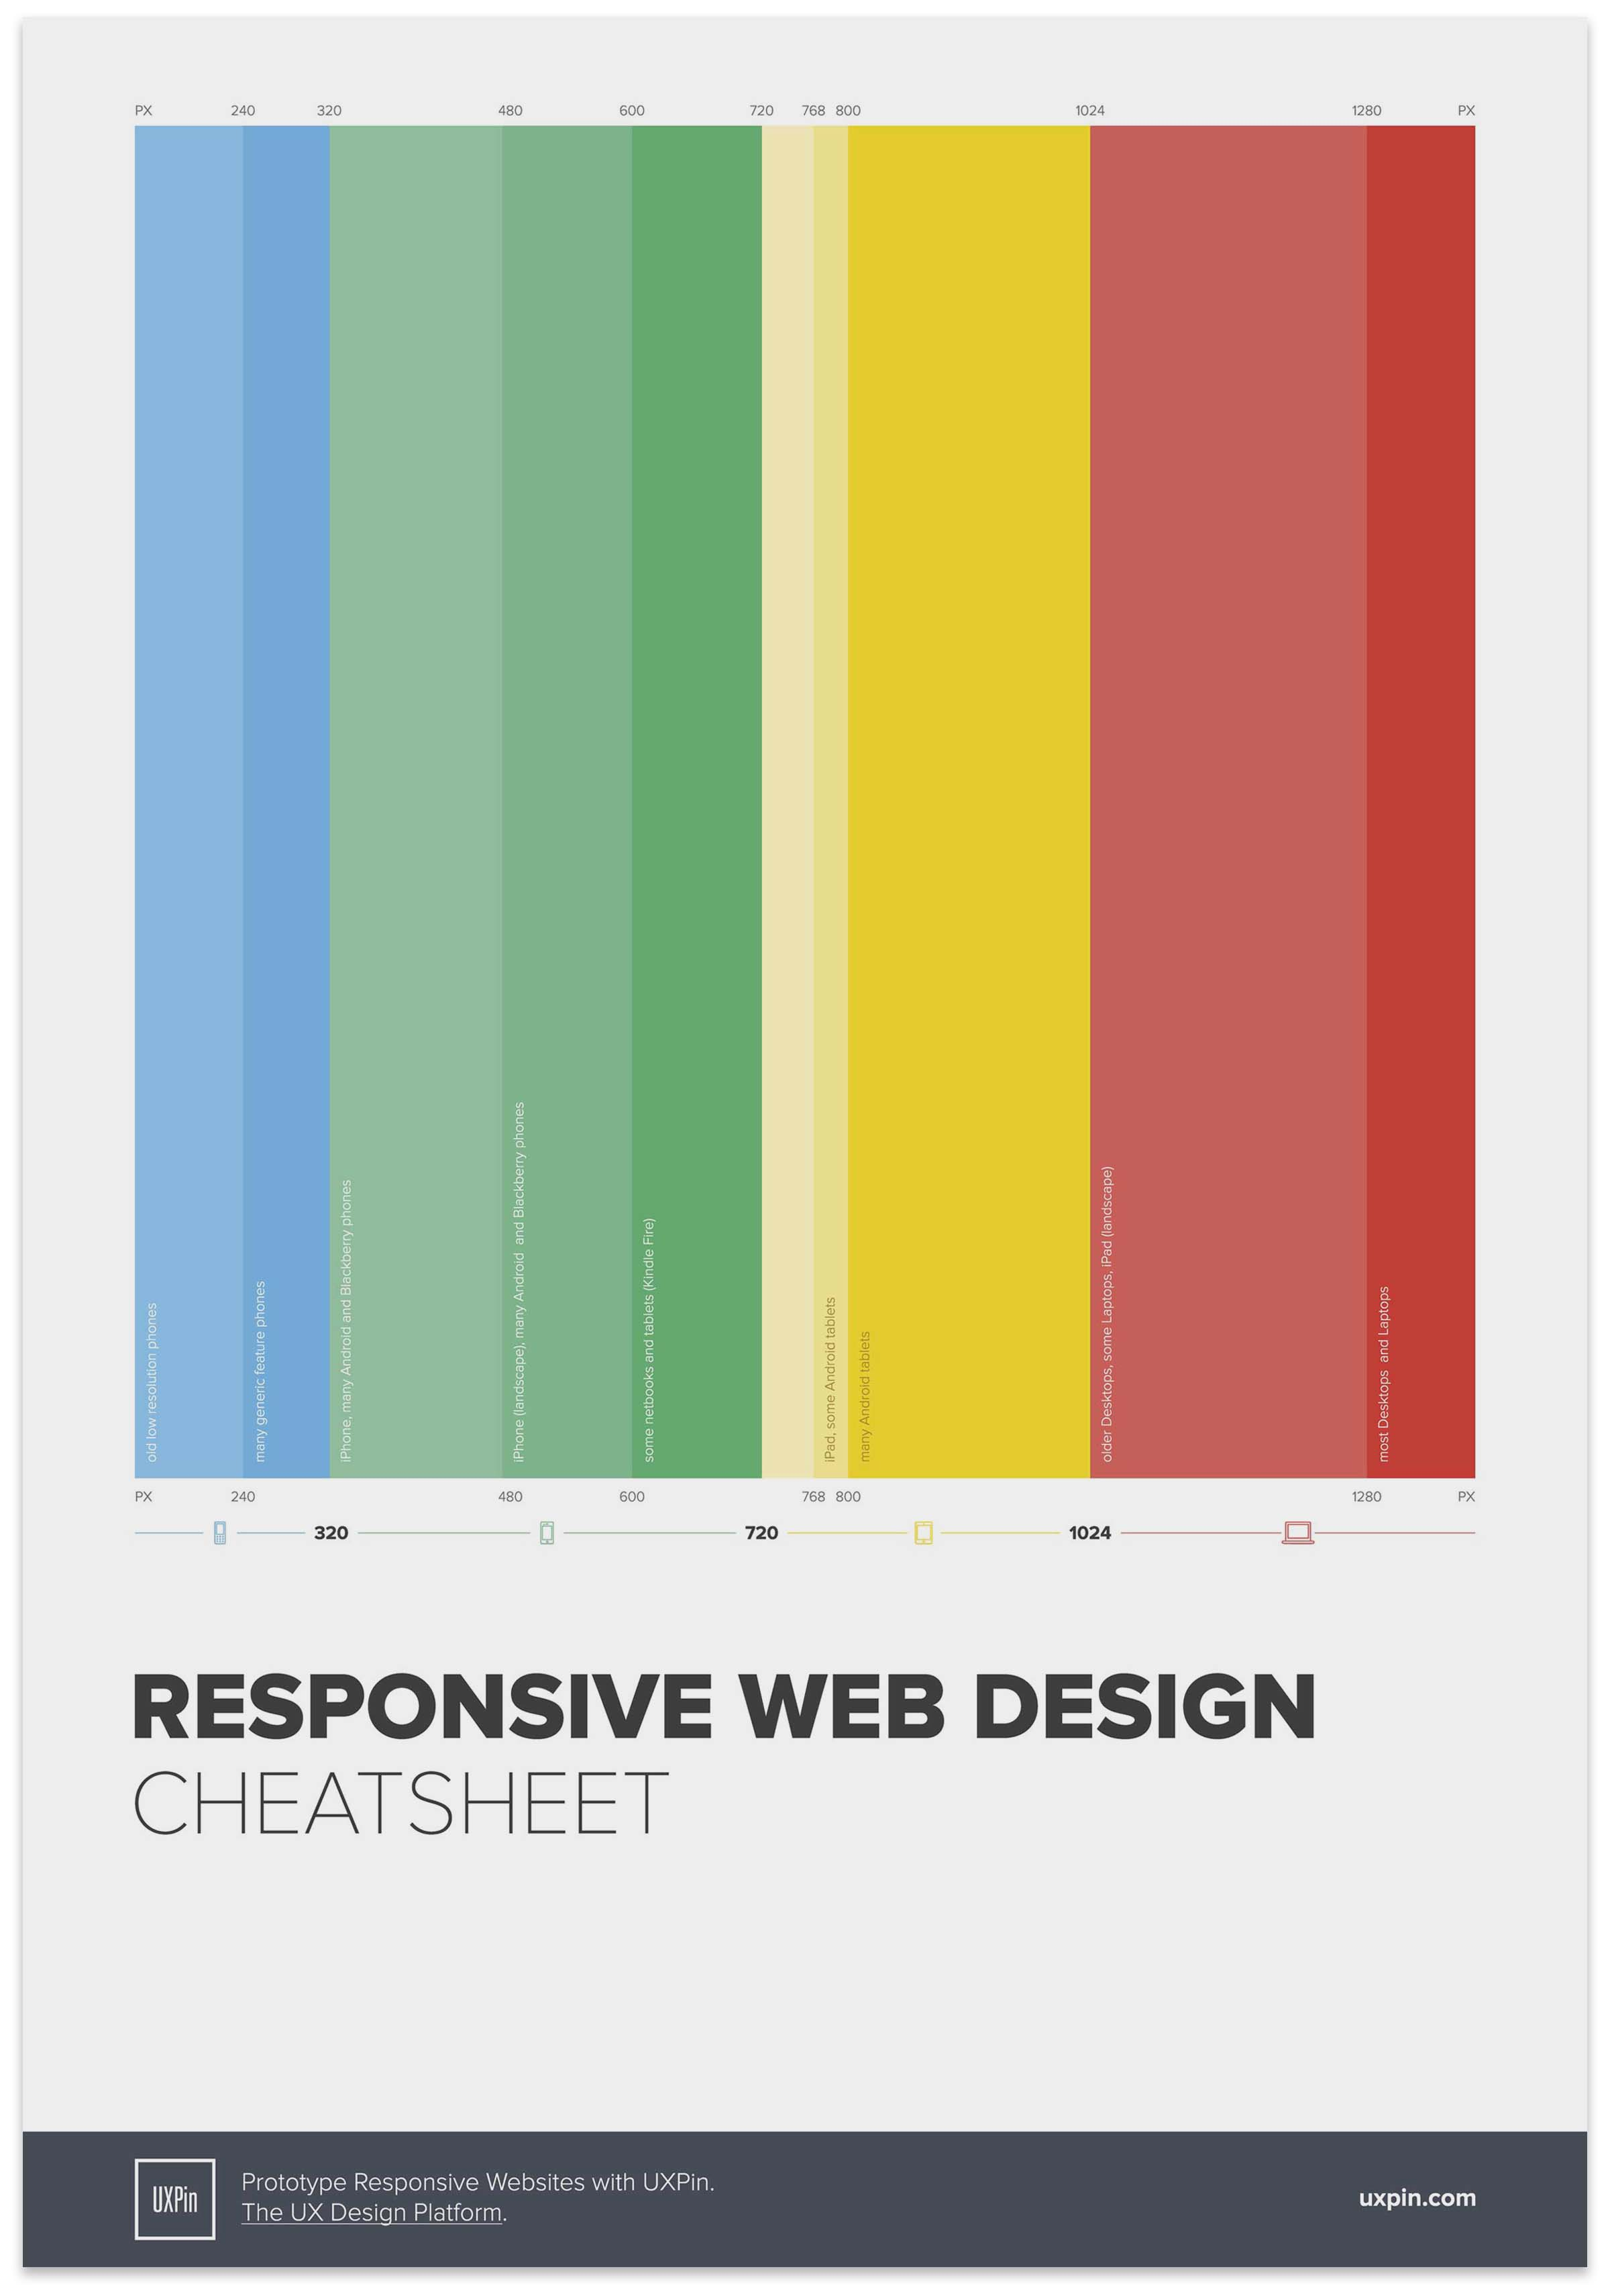 Responsive web design cheat sheet by Ben Gremillion